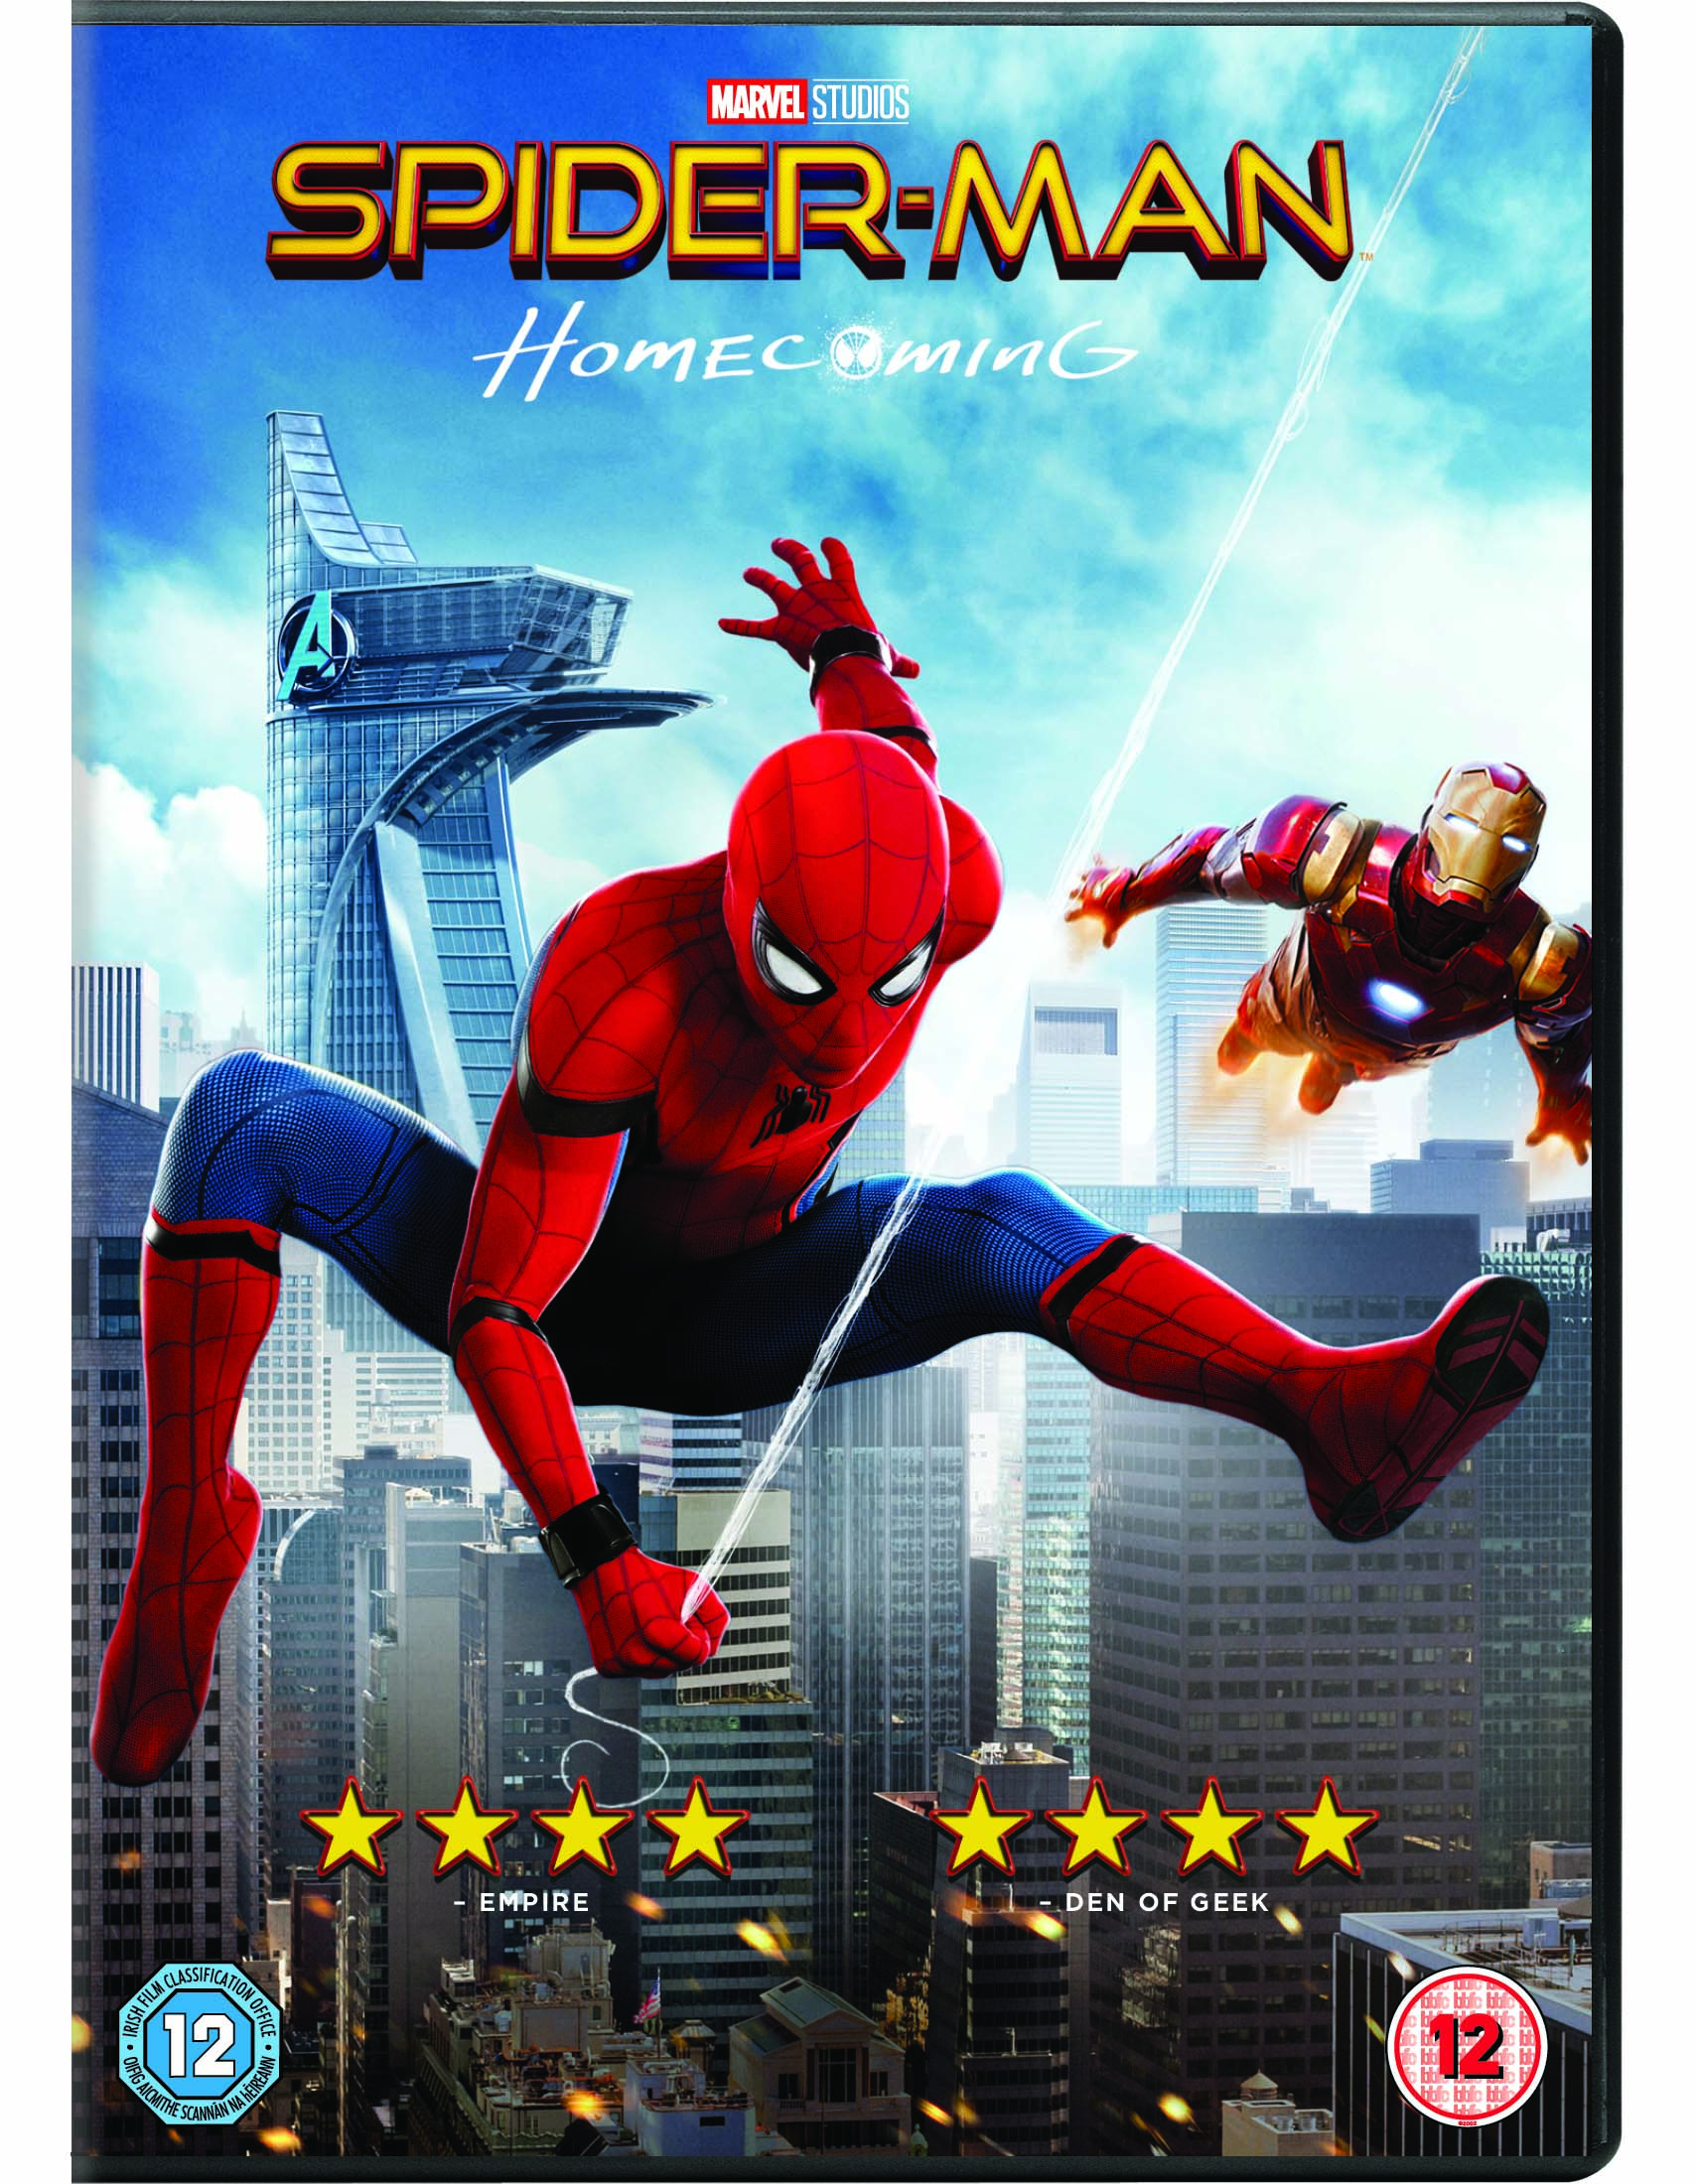 cf8ab898d9 SPIDER-MAN HOMECOMING DVD